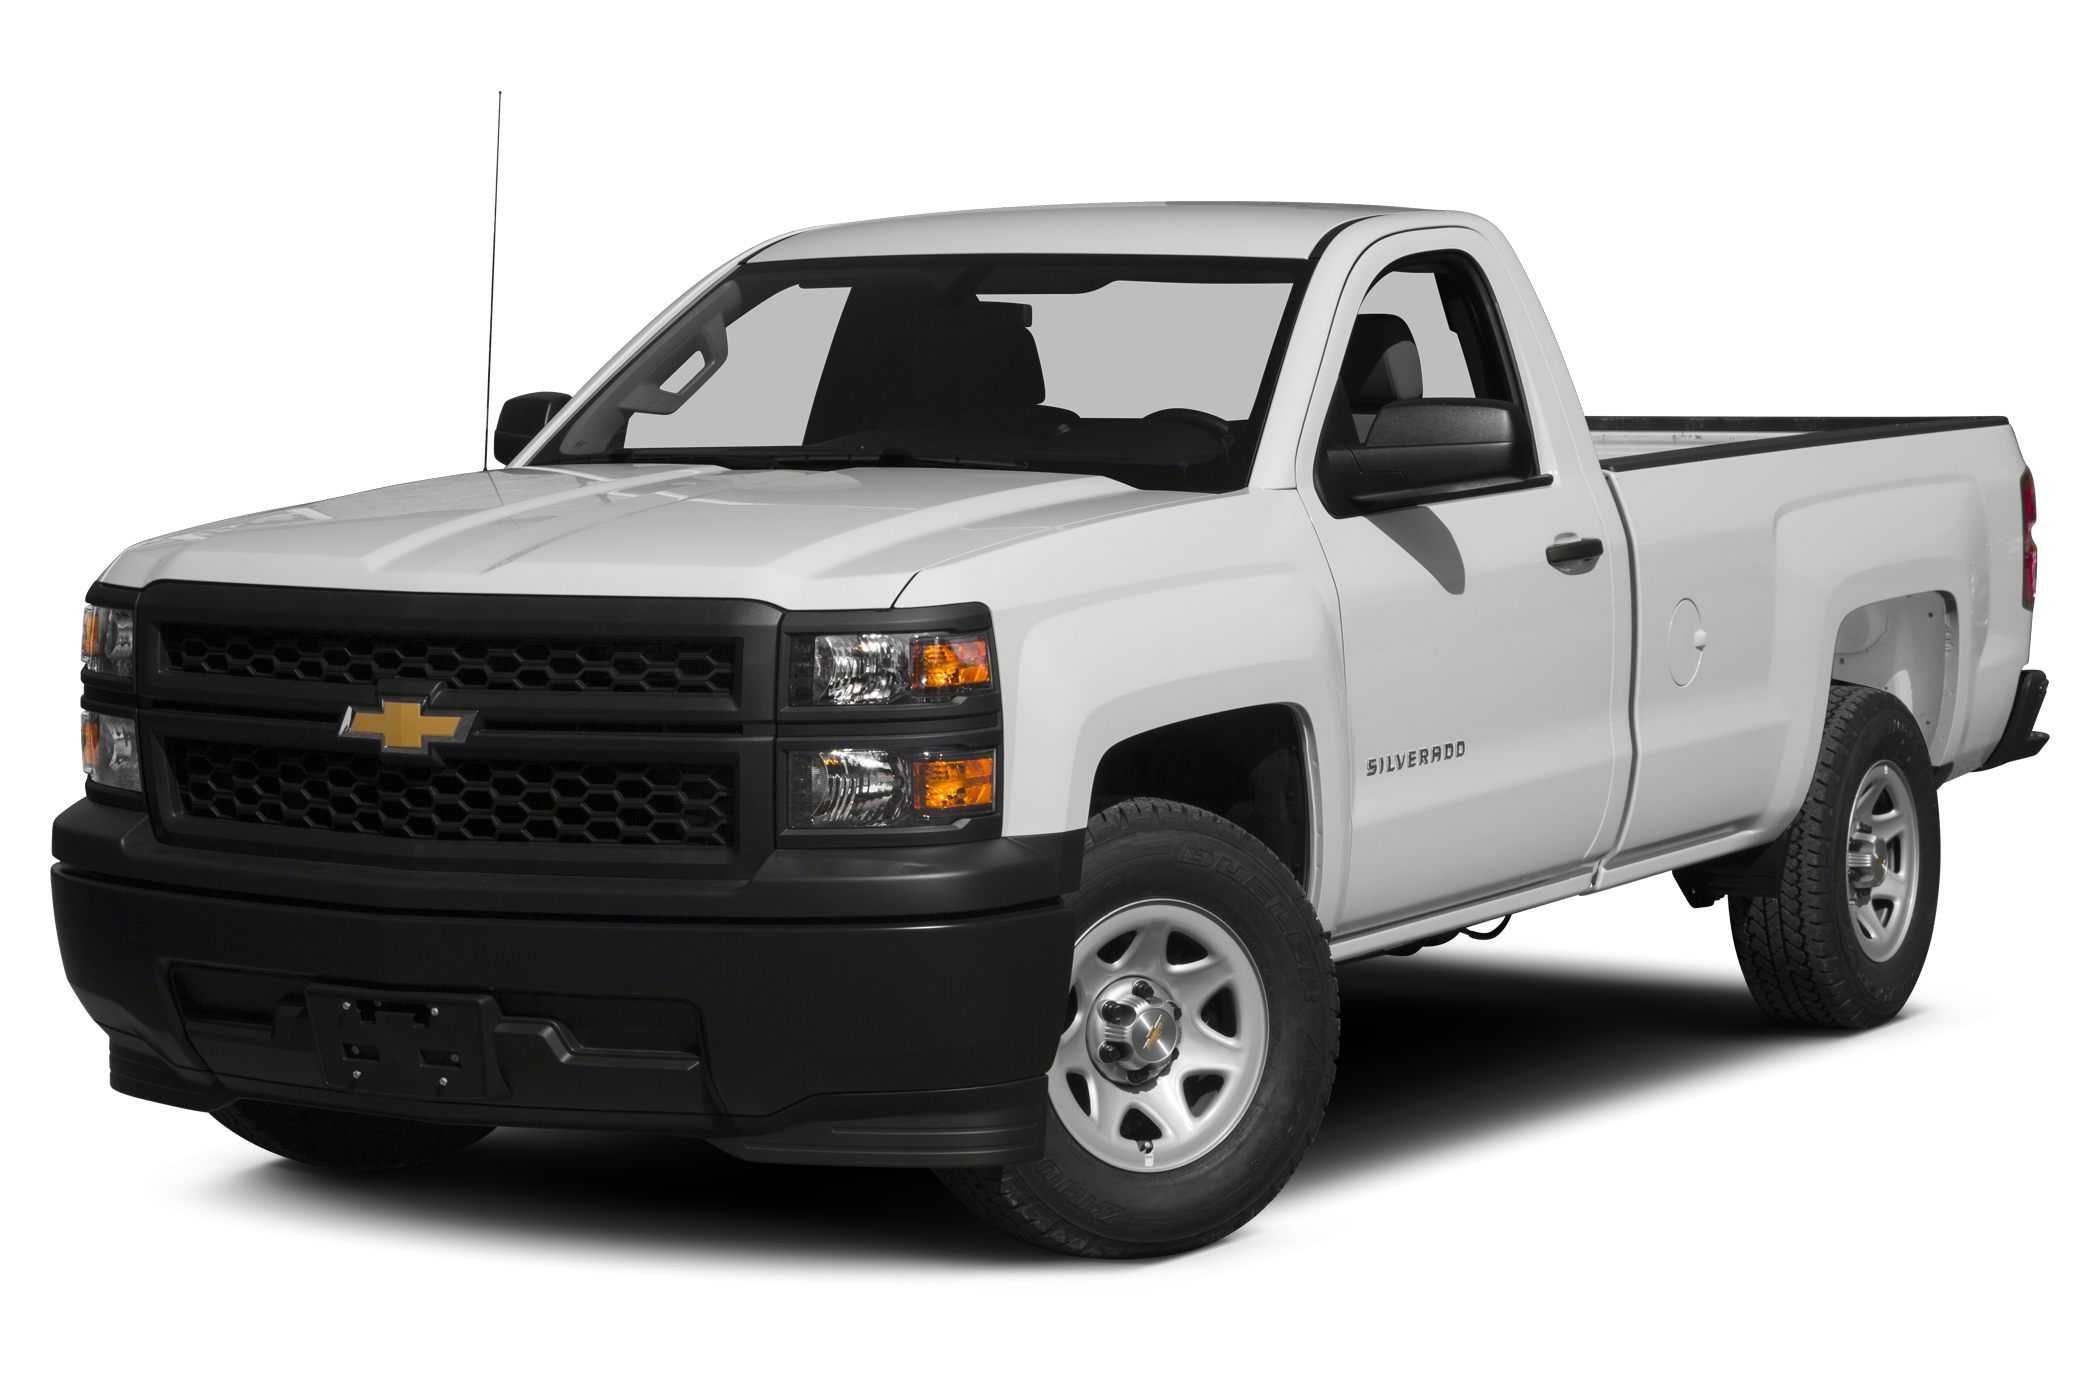 2015 Chevrolet Silverado 1500 1LT Extended Cab Pickup for sale in Rutland for $43,250 with 0 miles.